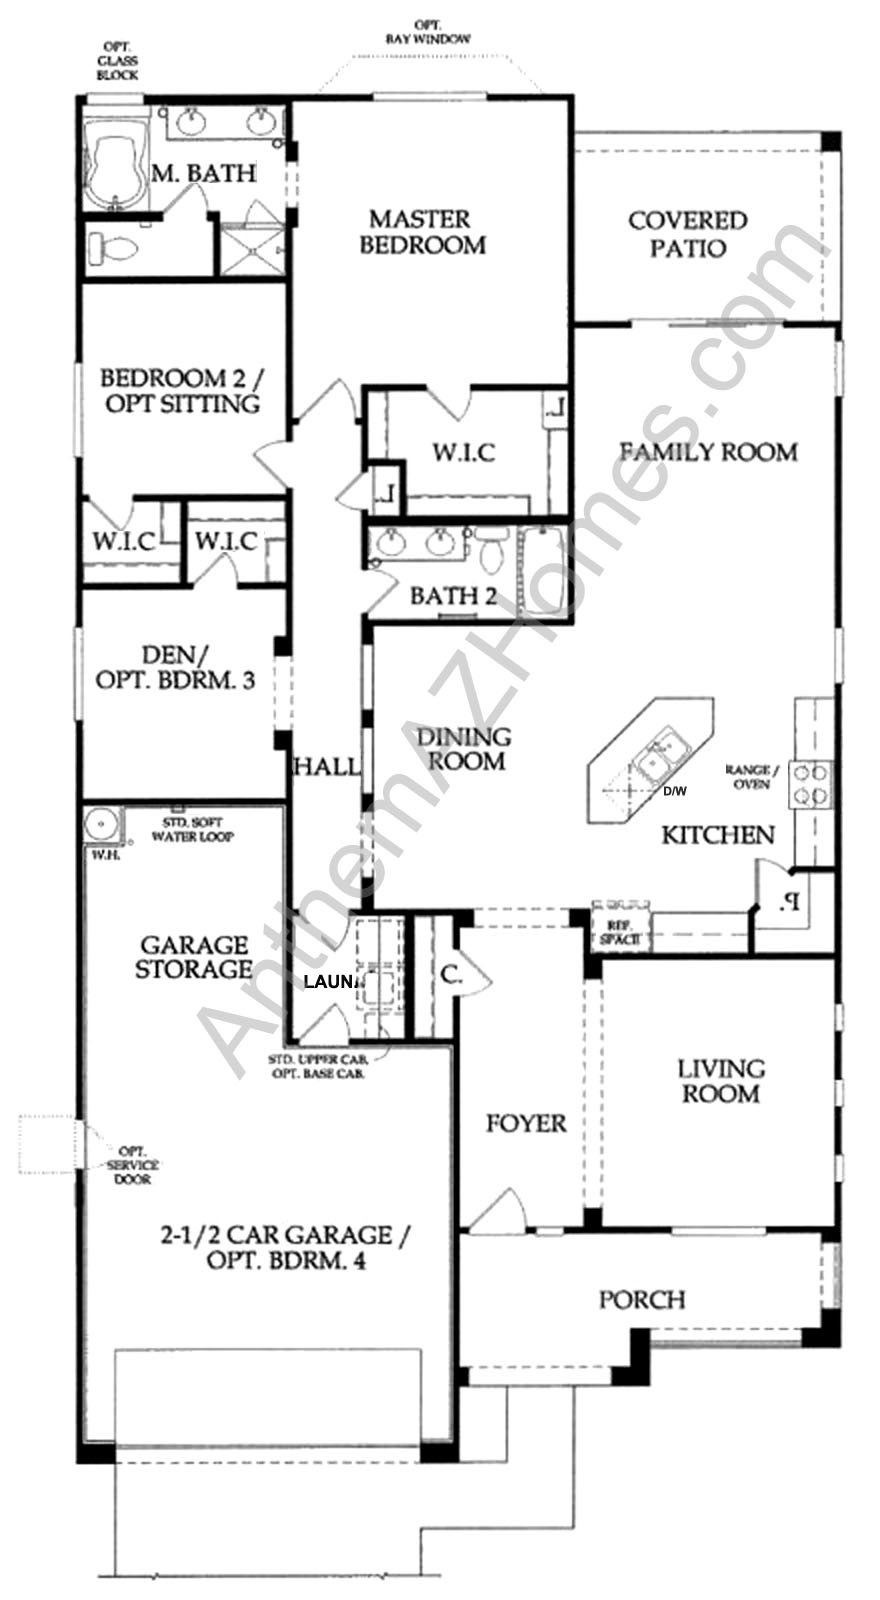 750 Square Feet House Plans besides House Plans Franklin Indiana likewise 2 Bedroom Floor Plans Beautiful Pictures Photos Of Remodeling further 14x30 Timber Frame Shed likewise Home Plan 20944. on home for a three car garage addition designs